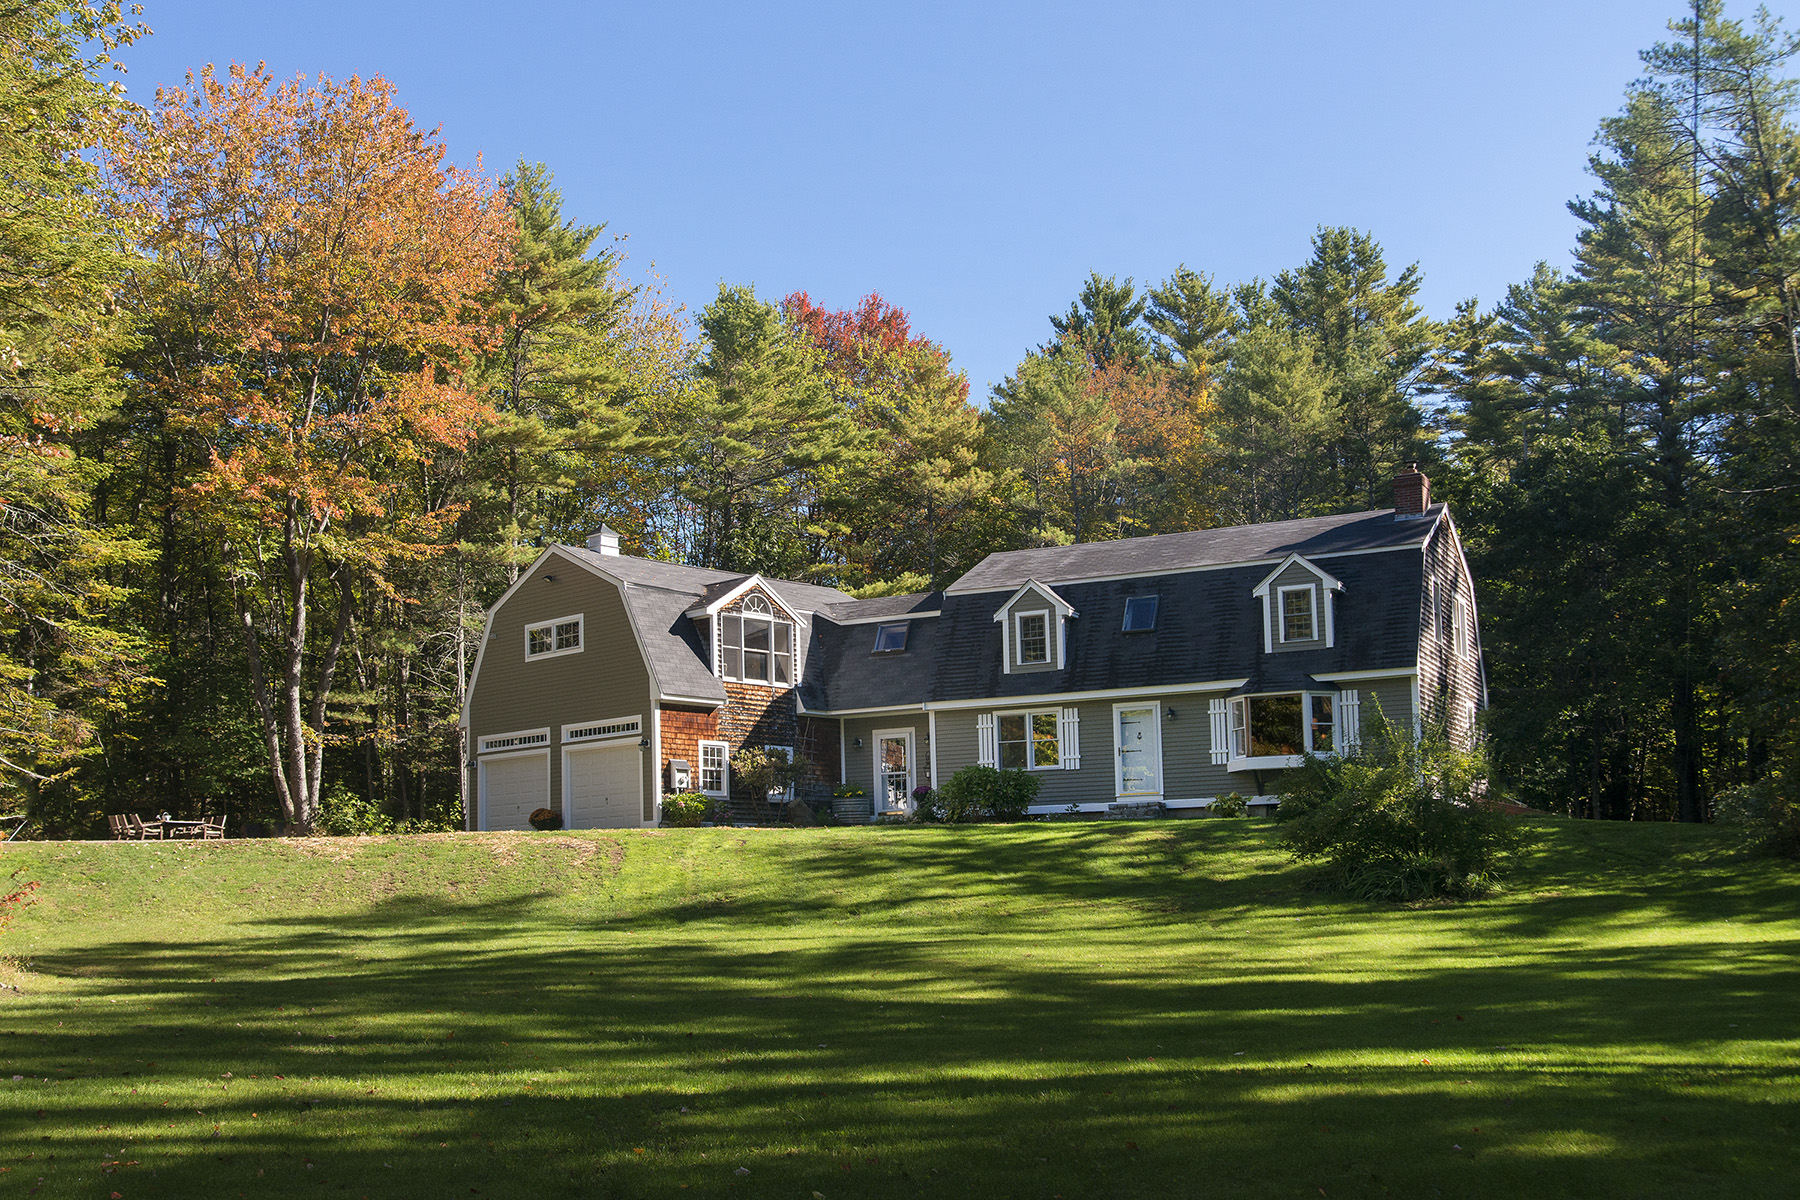 Single Family Home for Sale at 9 Cranberry Pines Road Scarborough, Maine 04074 United States